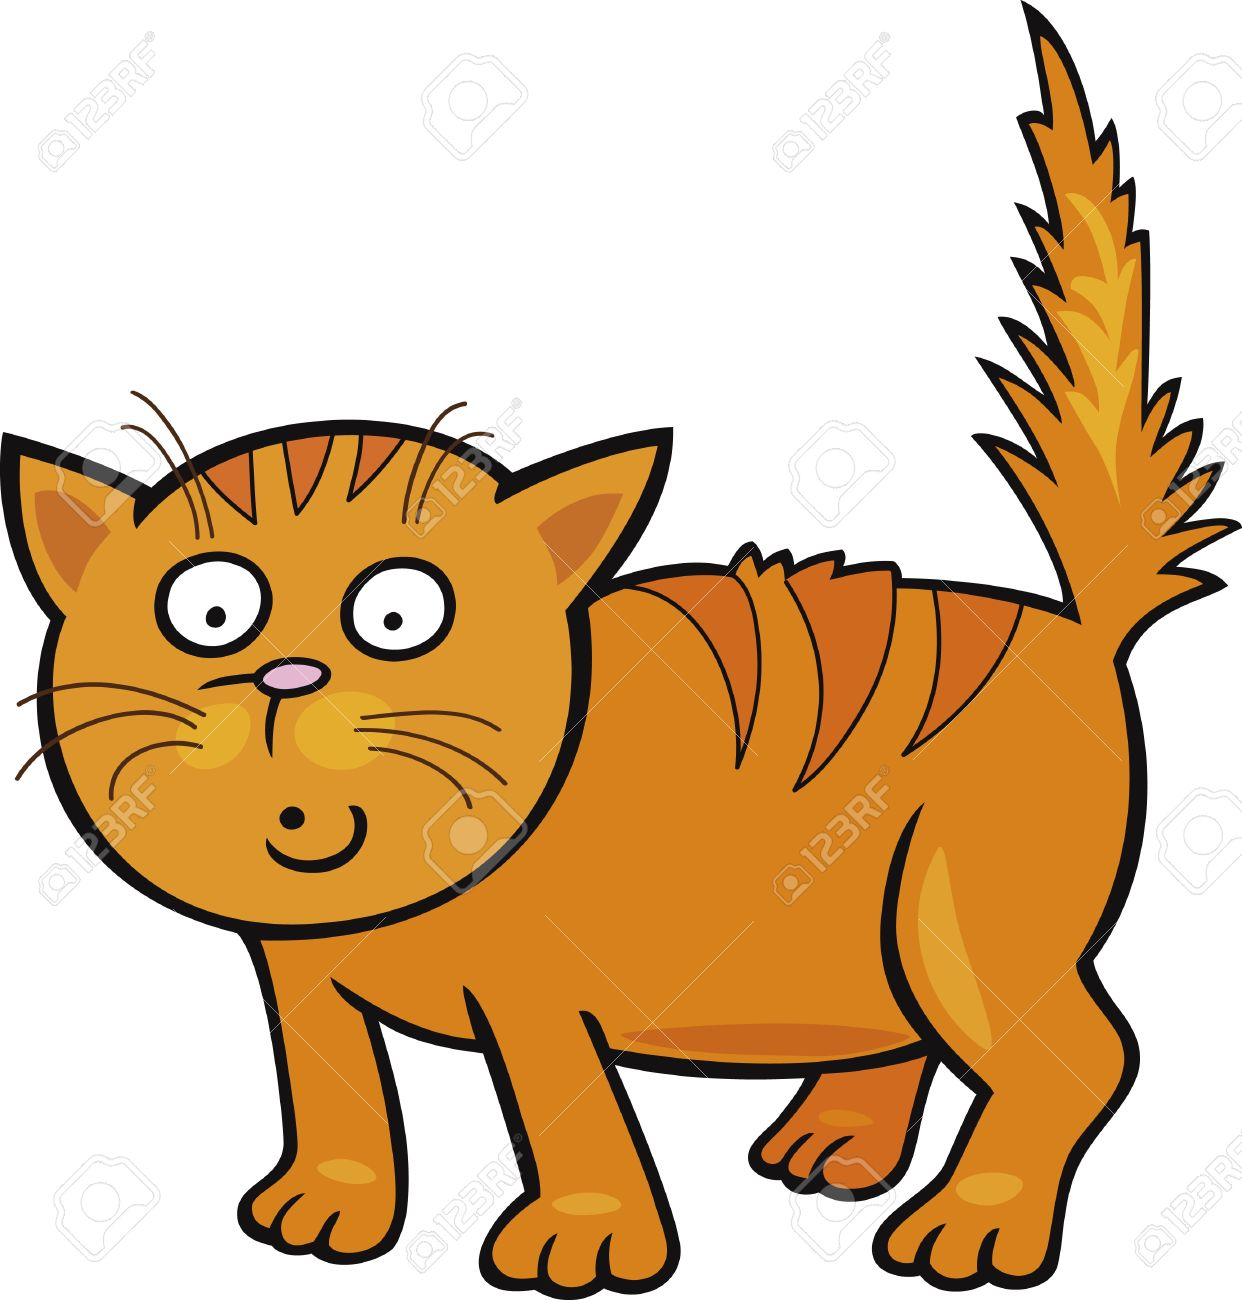 Scared Cat Clipart.